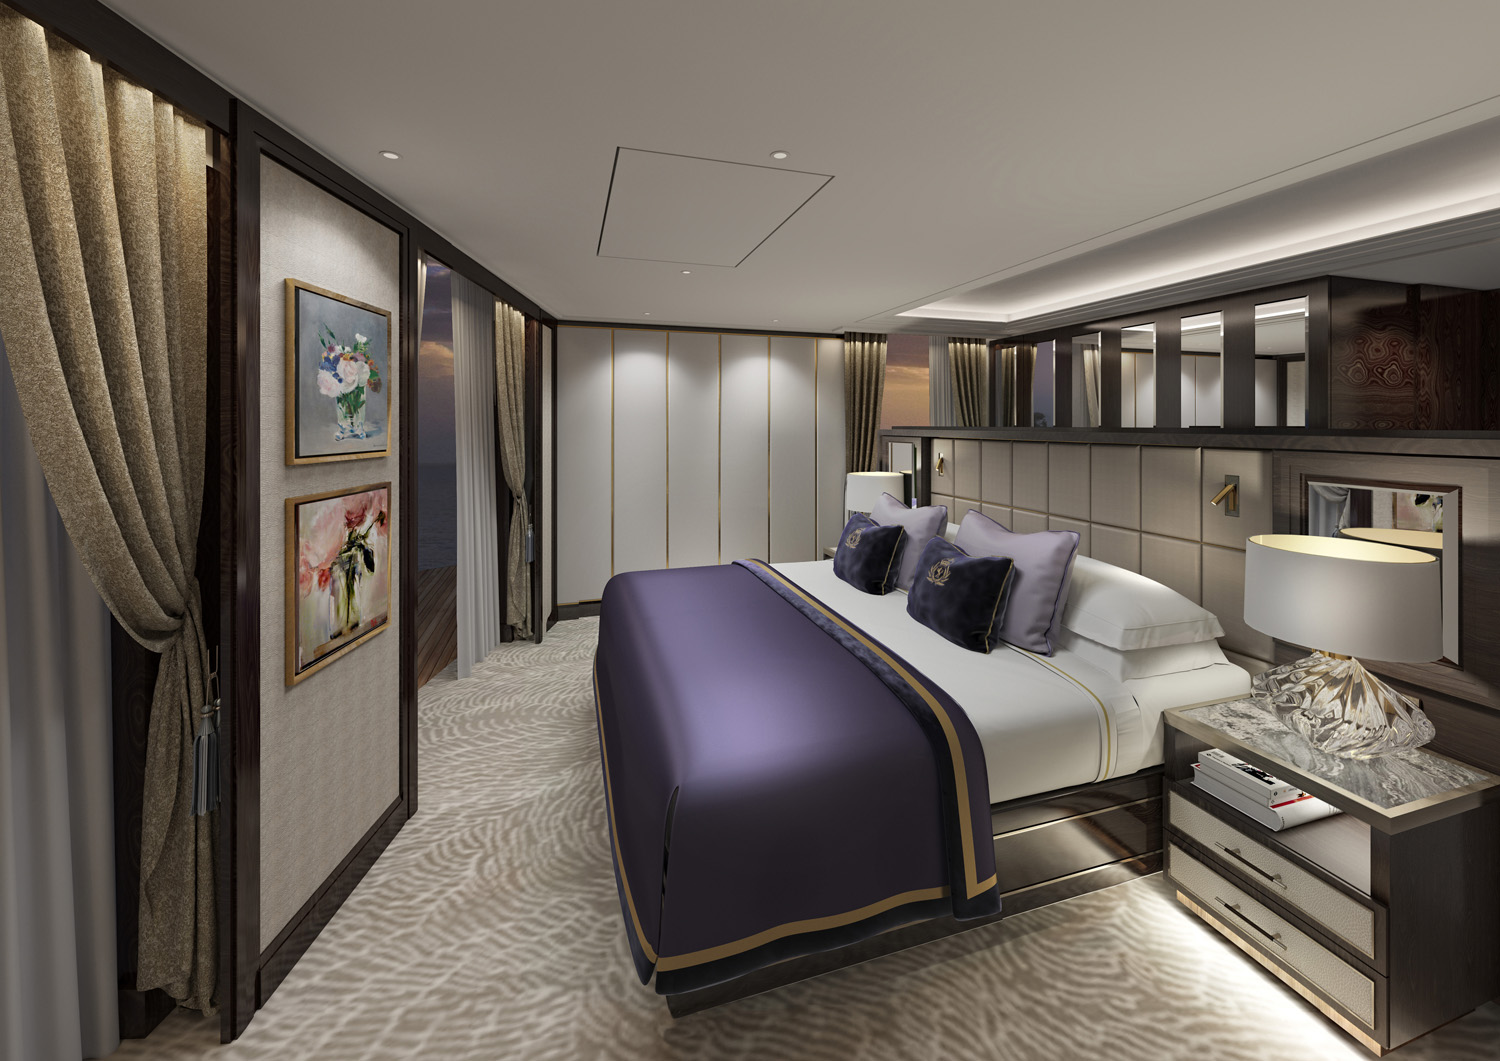 A rendering of a redesigned Cunard Grand Suite.